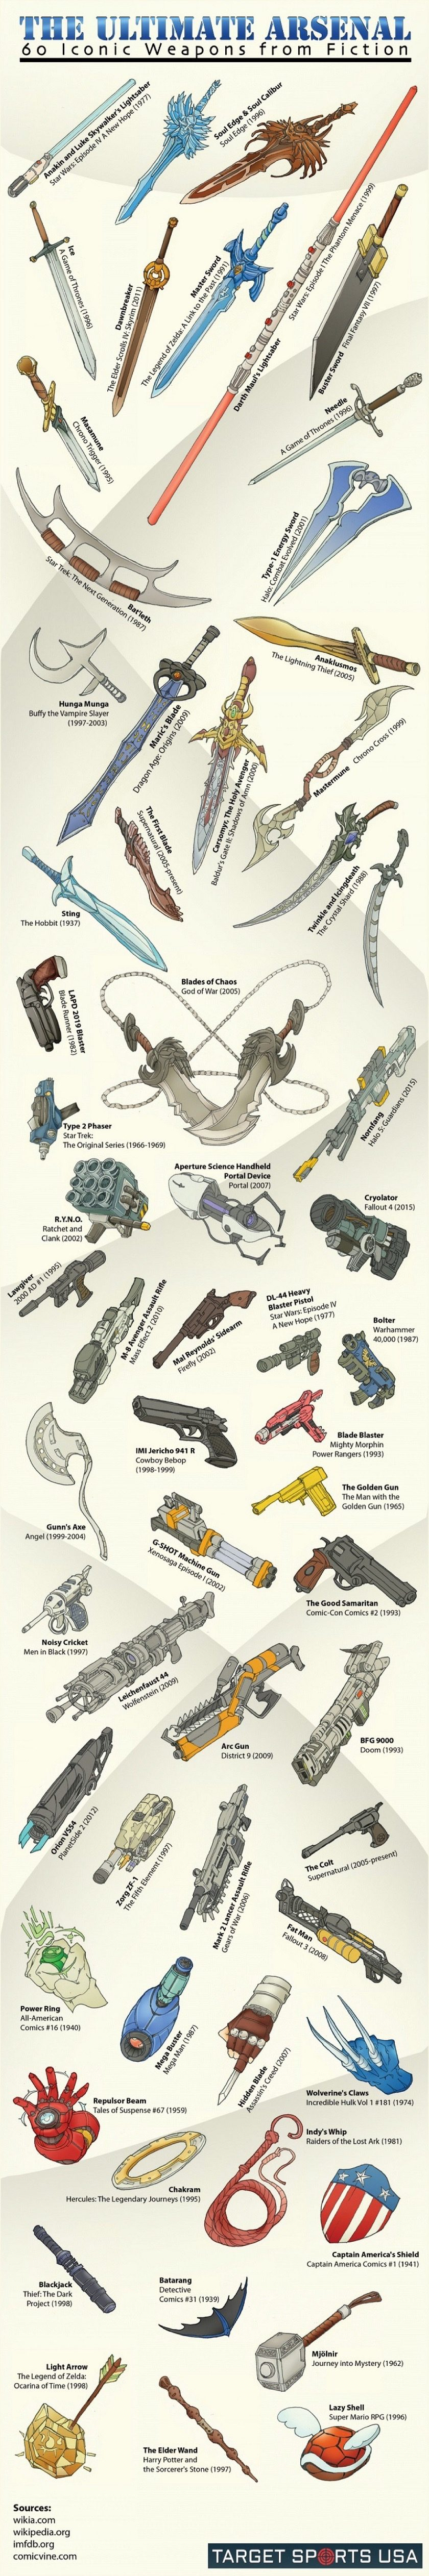 The ultimate arsenal of iconic weapons from fiction #infographic